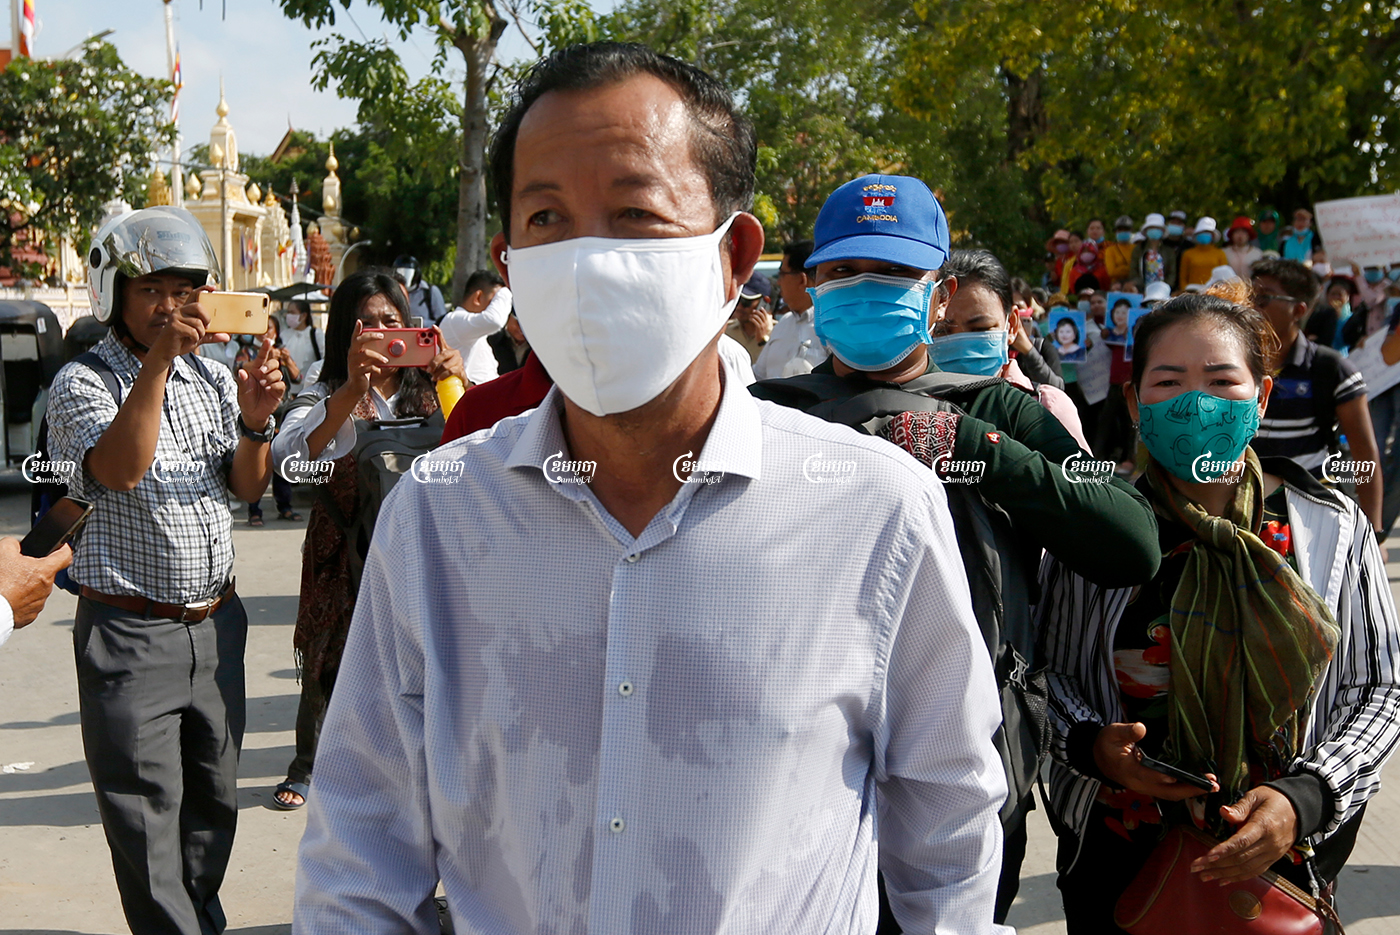 Union leader Rong Chhun joining a demonstration with Violet Apparel factory workers in Phnom Penh on July 28, 2020. CamboJA/ Panha Chhorpoan